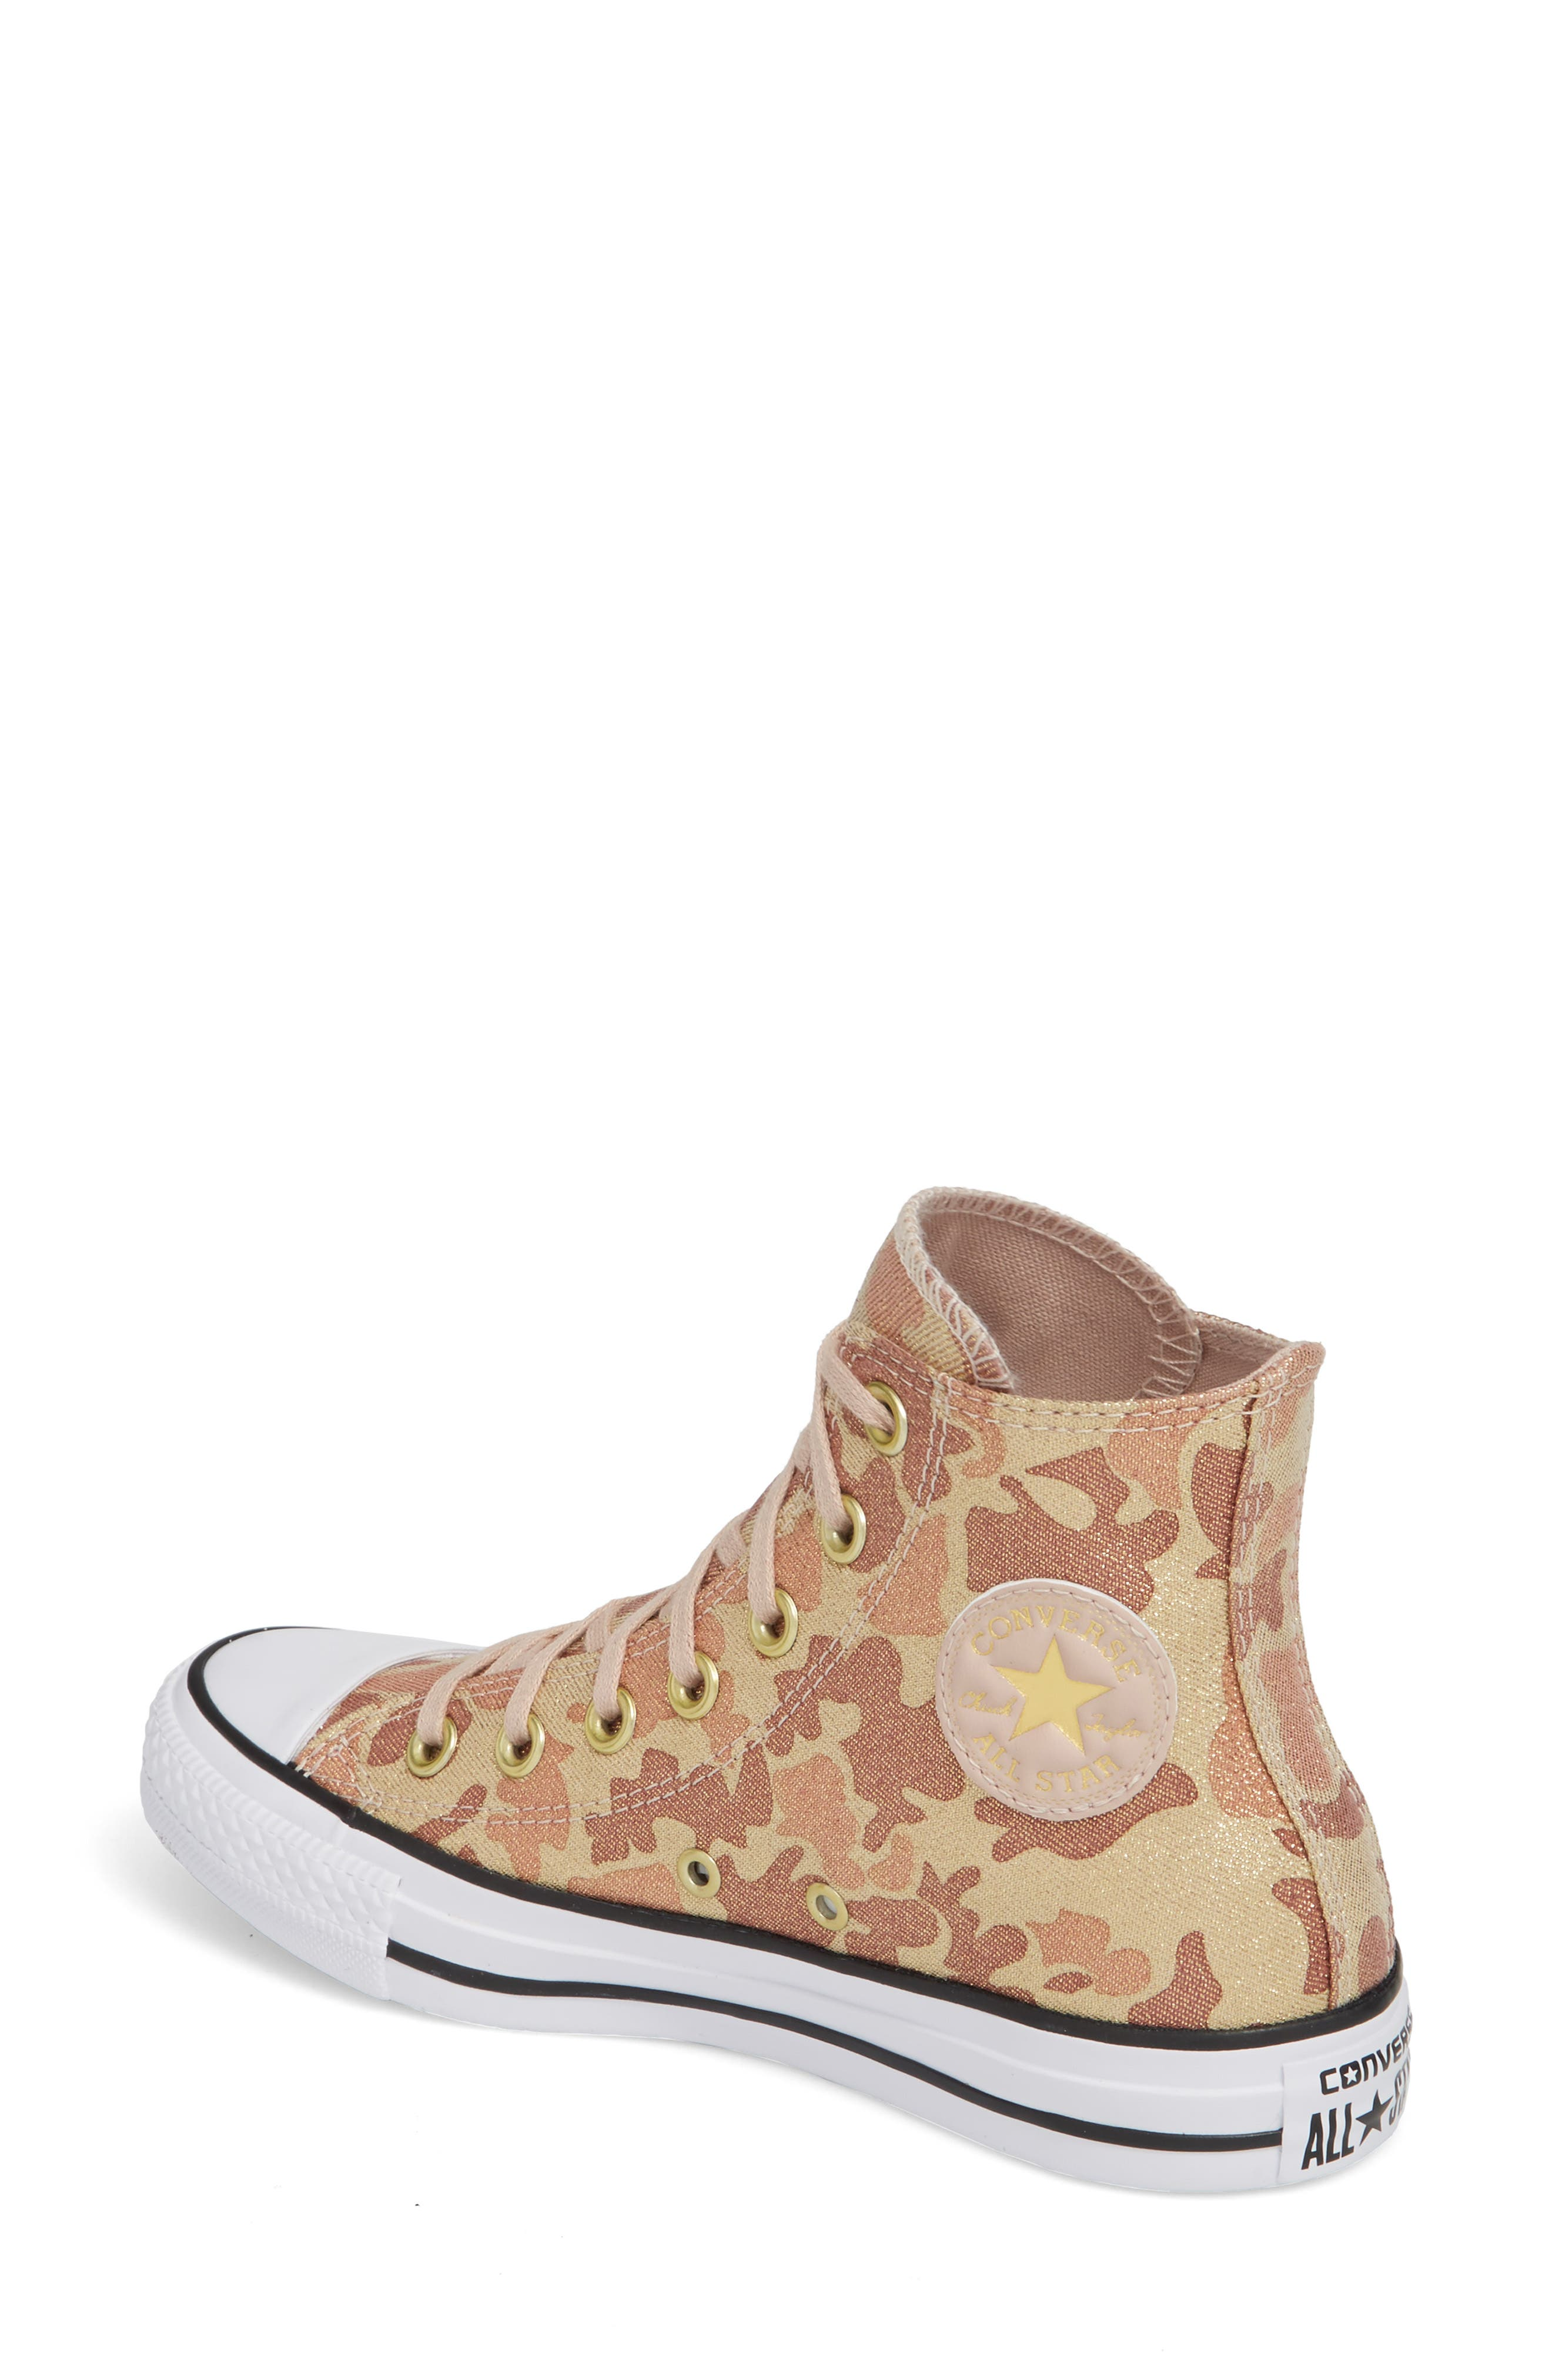 Chuck Taylor<sup>®</sup> All Star<sup>®</sup> High Top Sneaker,                             Alternate thumbnail 2, color,                             Particle Beige